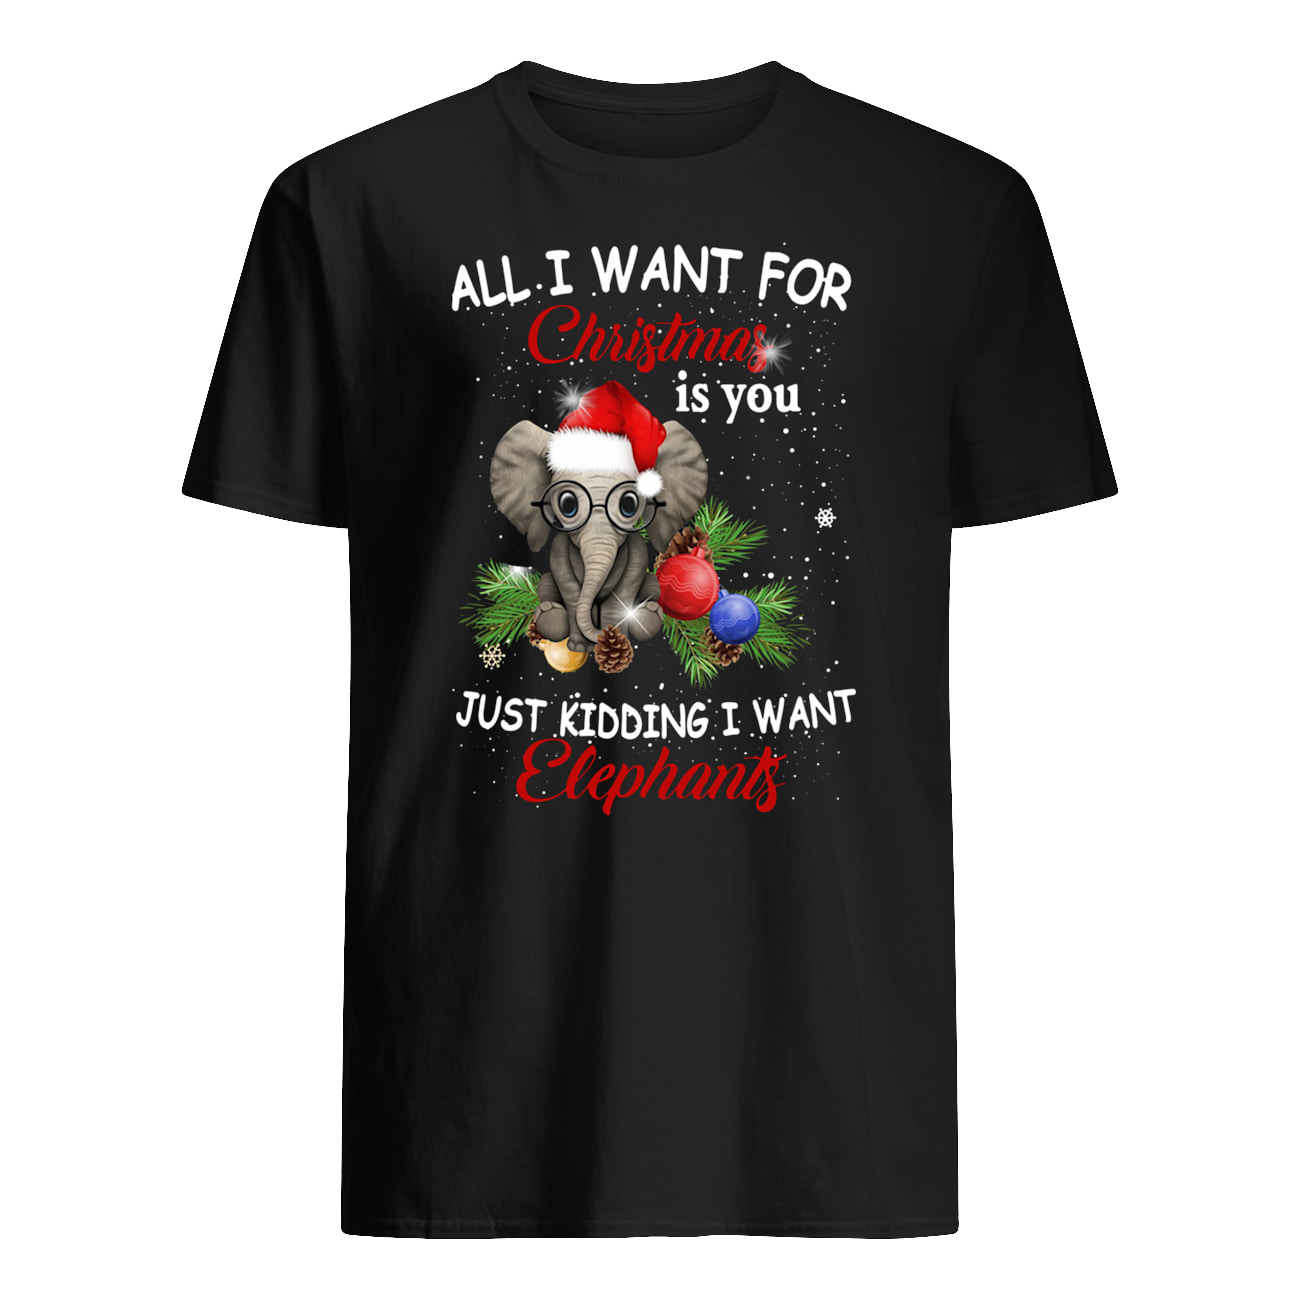 All i want for christmas is you just kidding i want elephant mens shirt